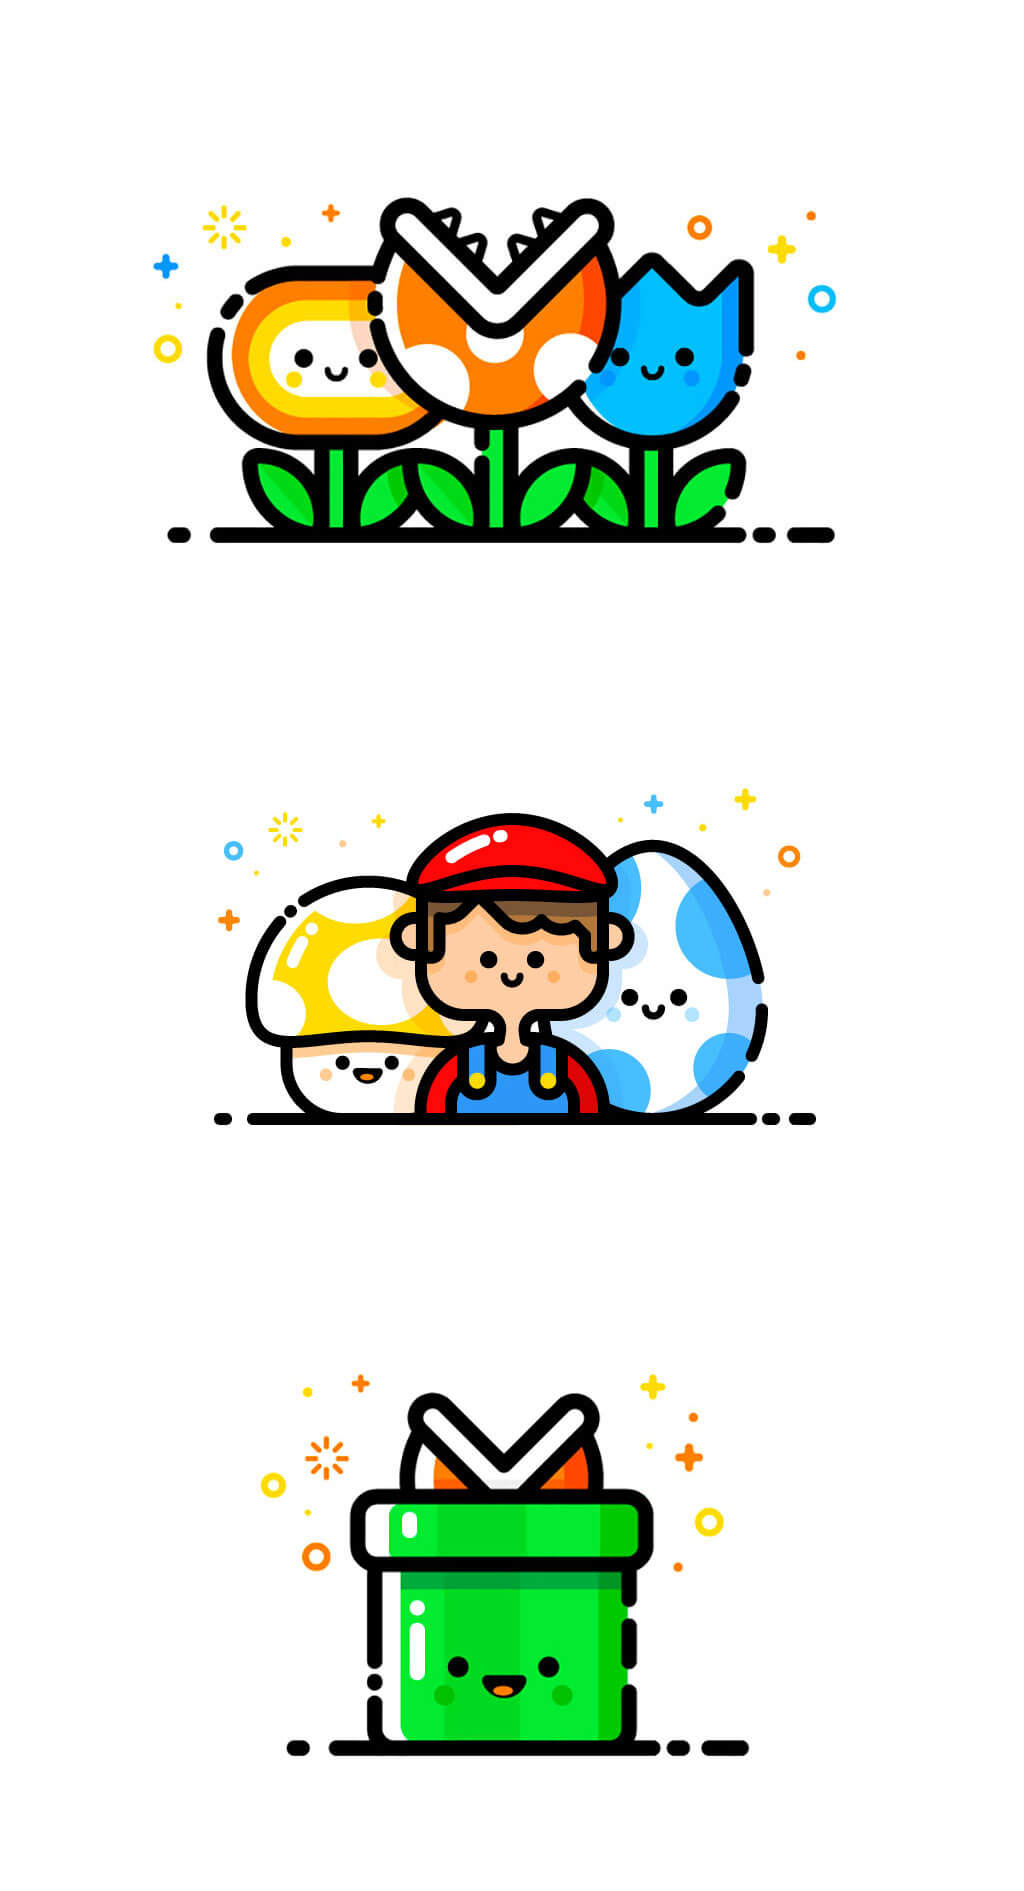 Mario Fan Art by MBE